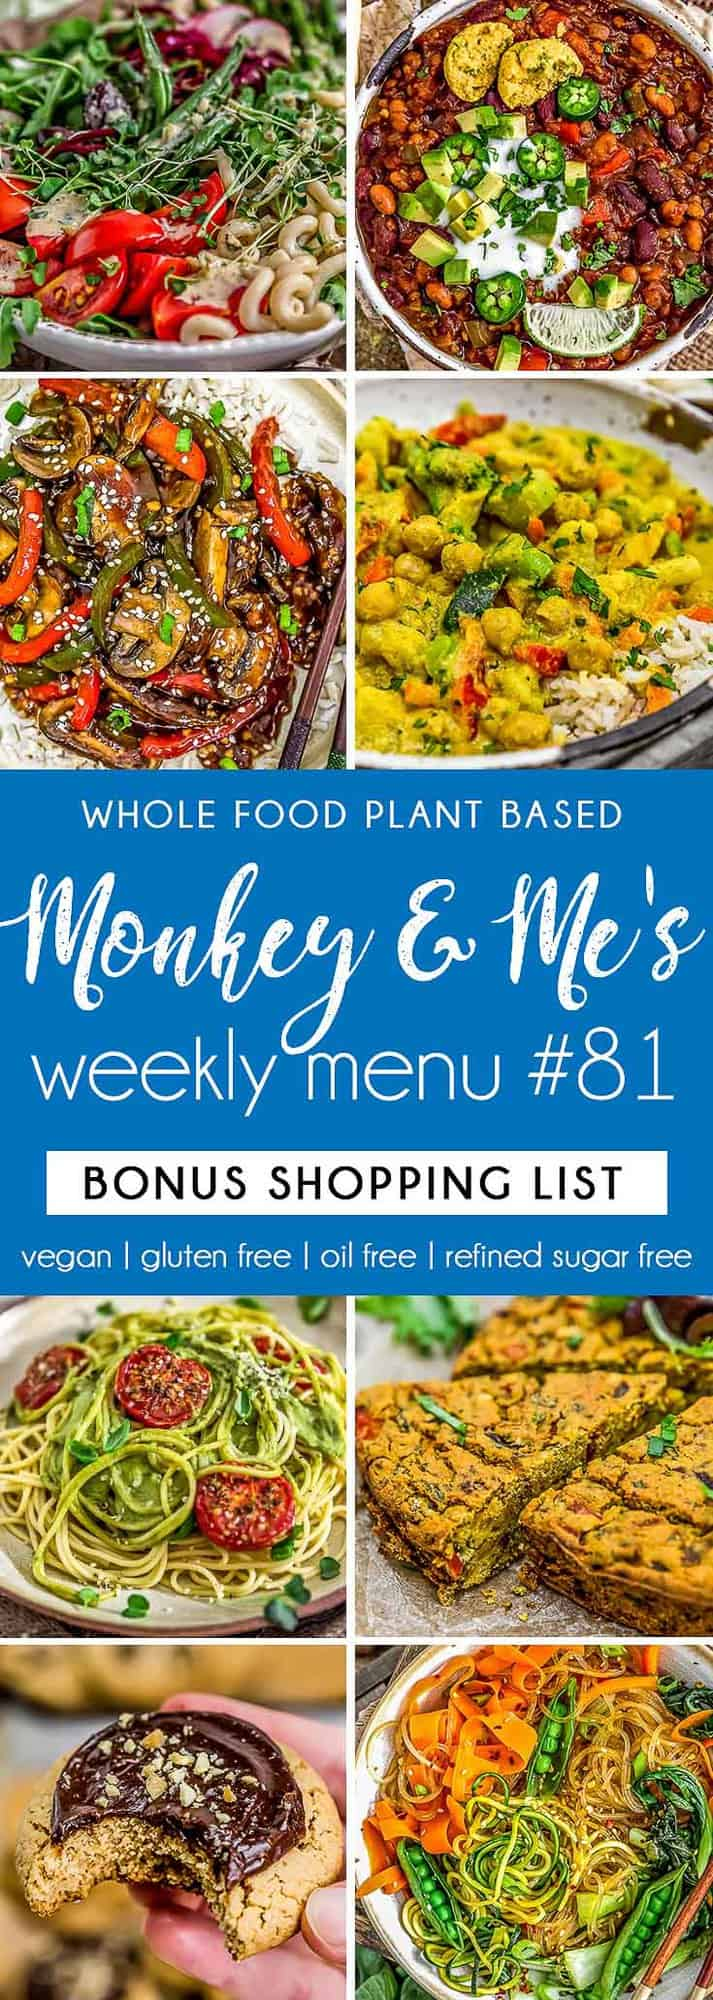 Monkey and Me's Menu 81 featuring 8 recipes